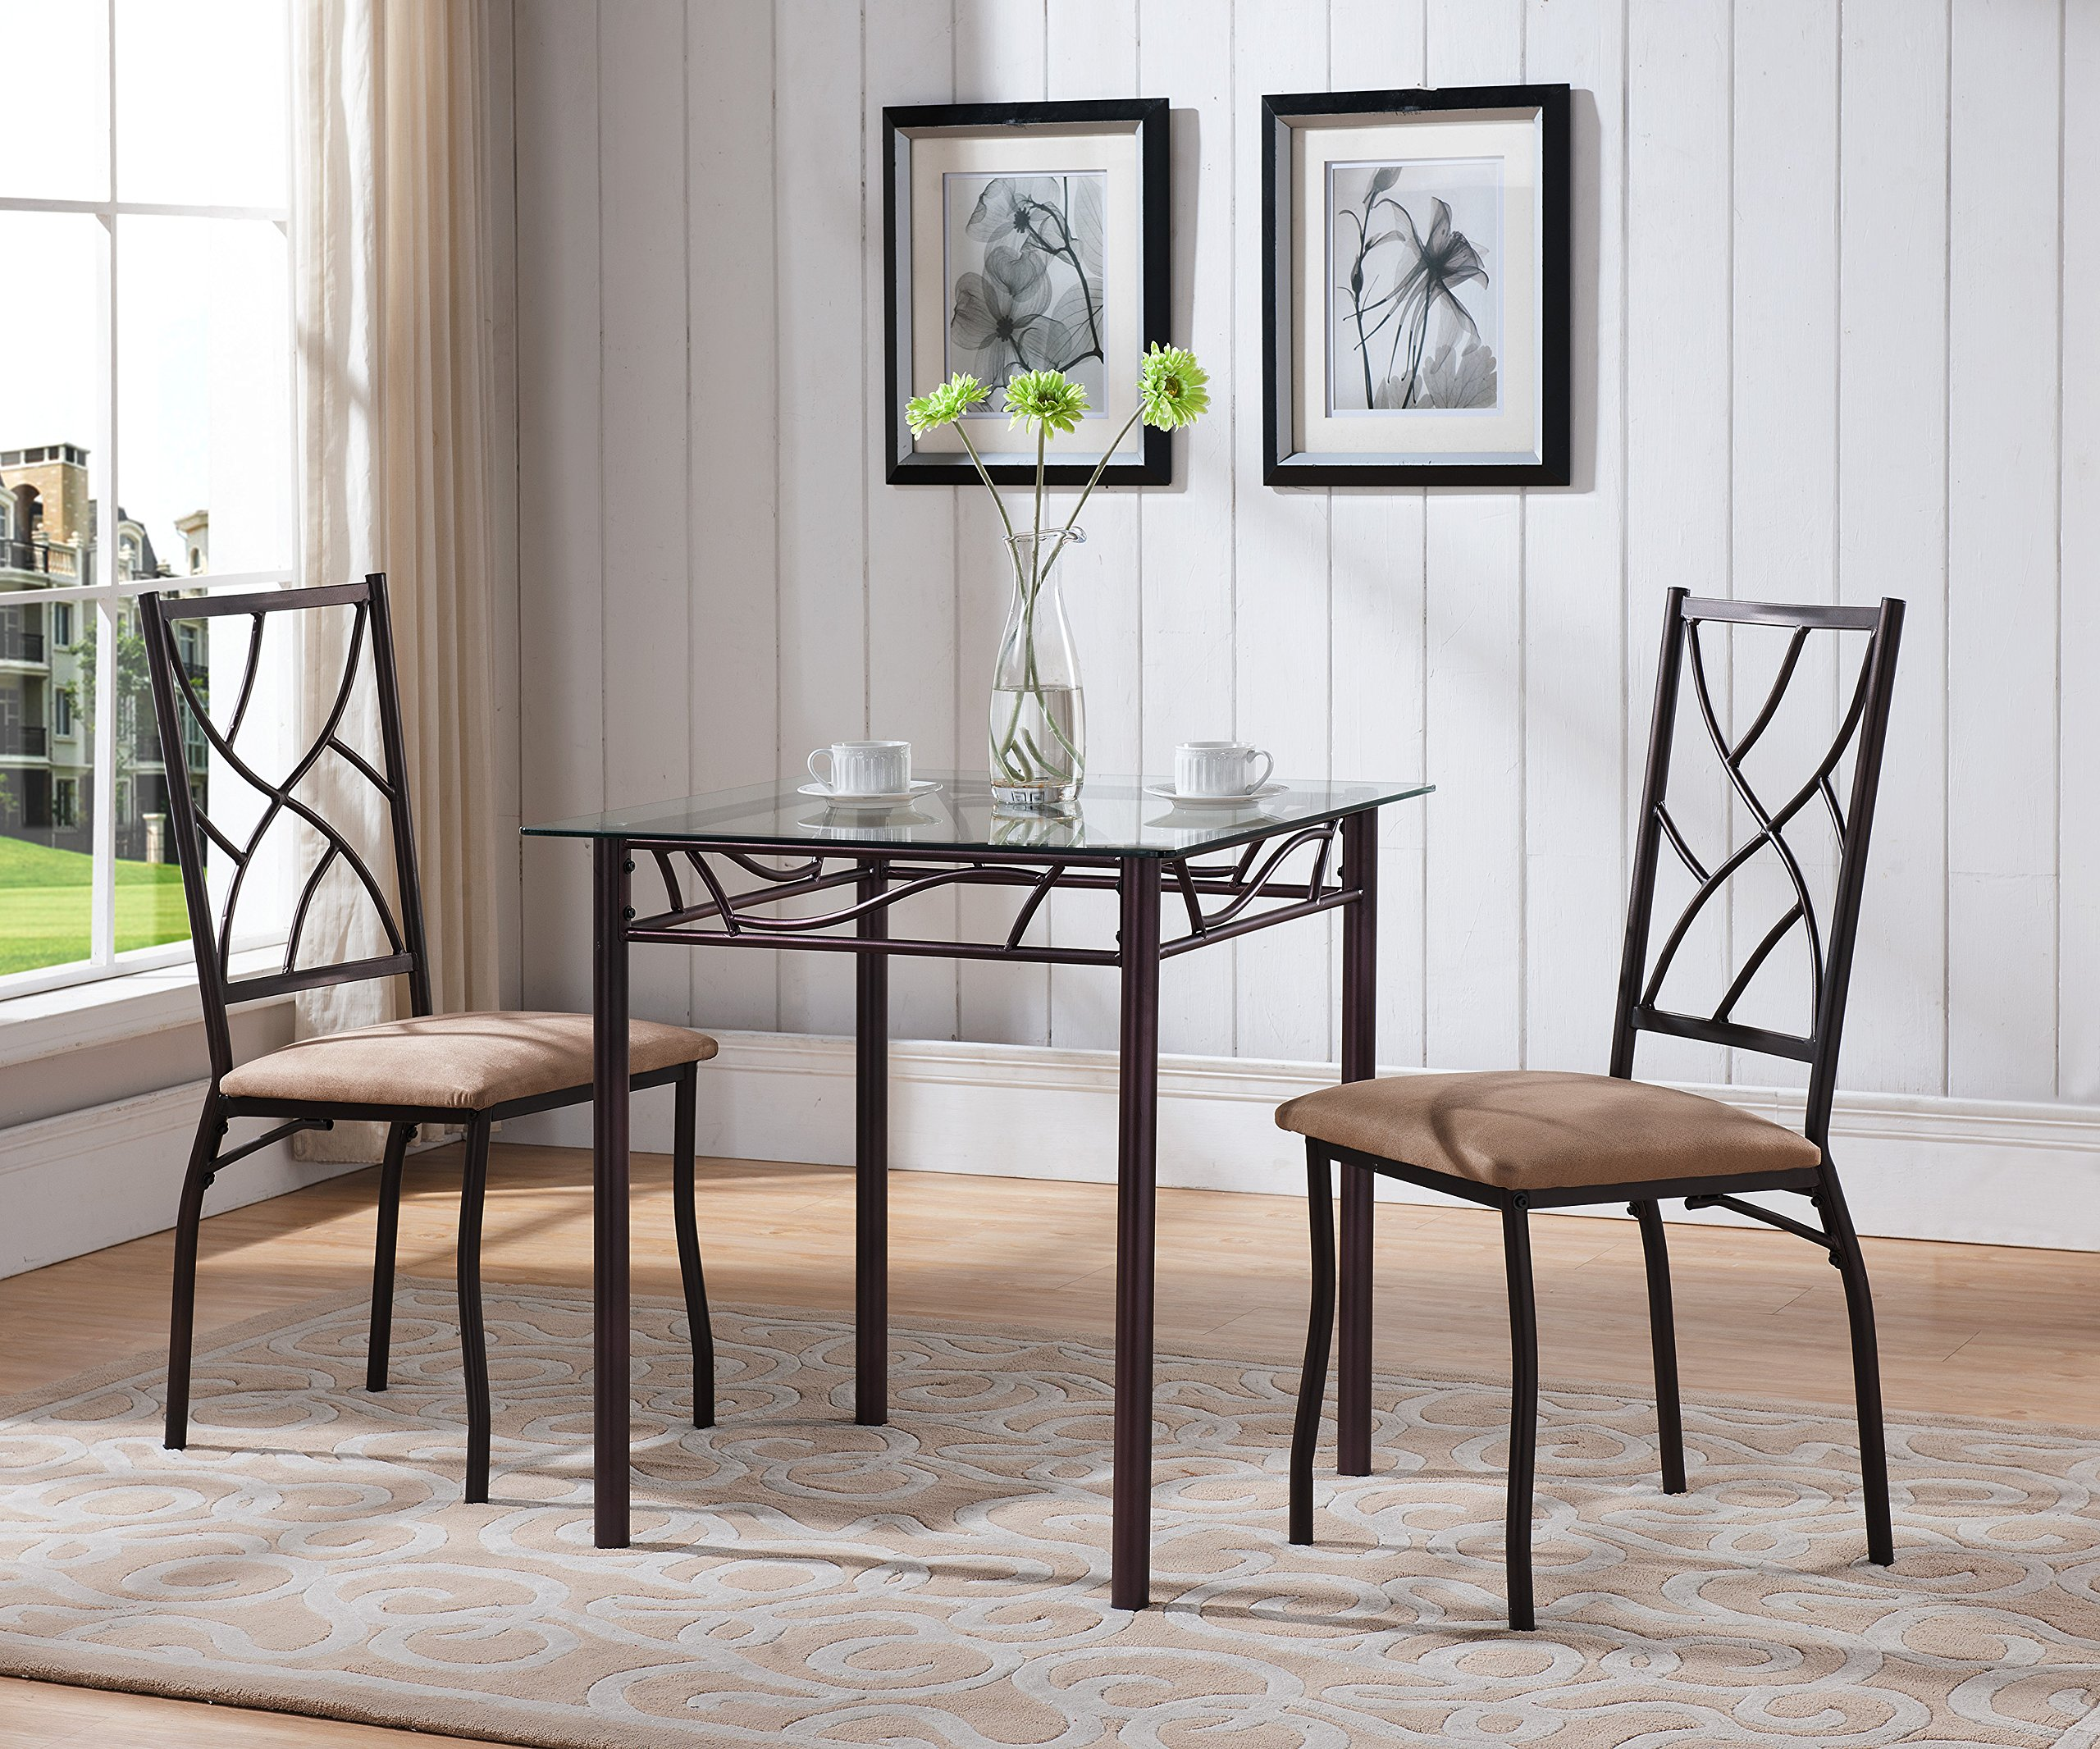 Kings Brand Furniture 3 Piece Bronze Metal Square Dining Kitchen Dinette Set, Table & 2 Chairs by Kings Brand Furniture